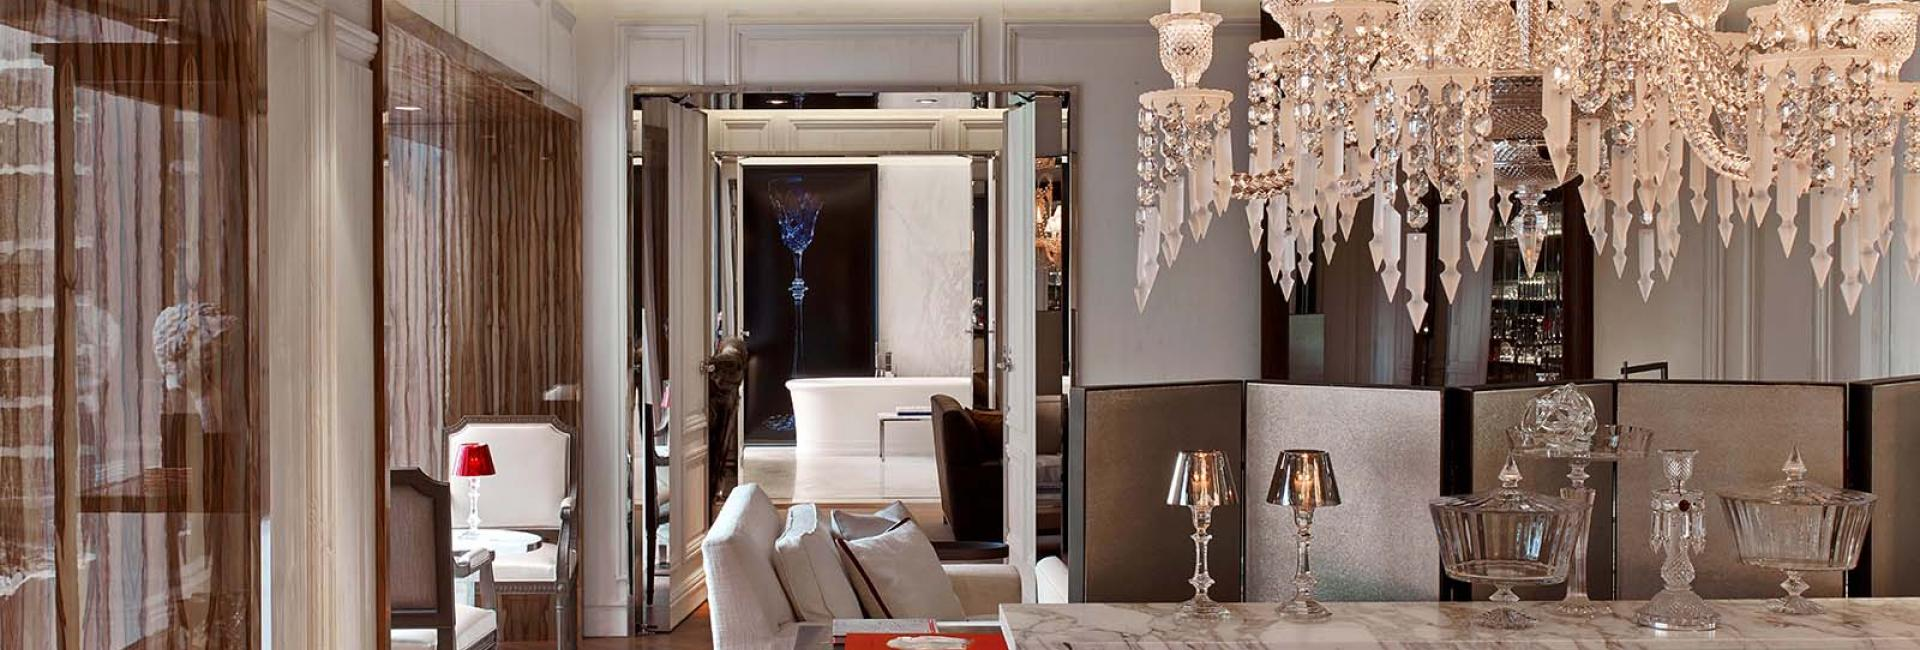 The Baccarat Suite at Baccarat Hotel New York